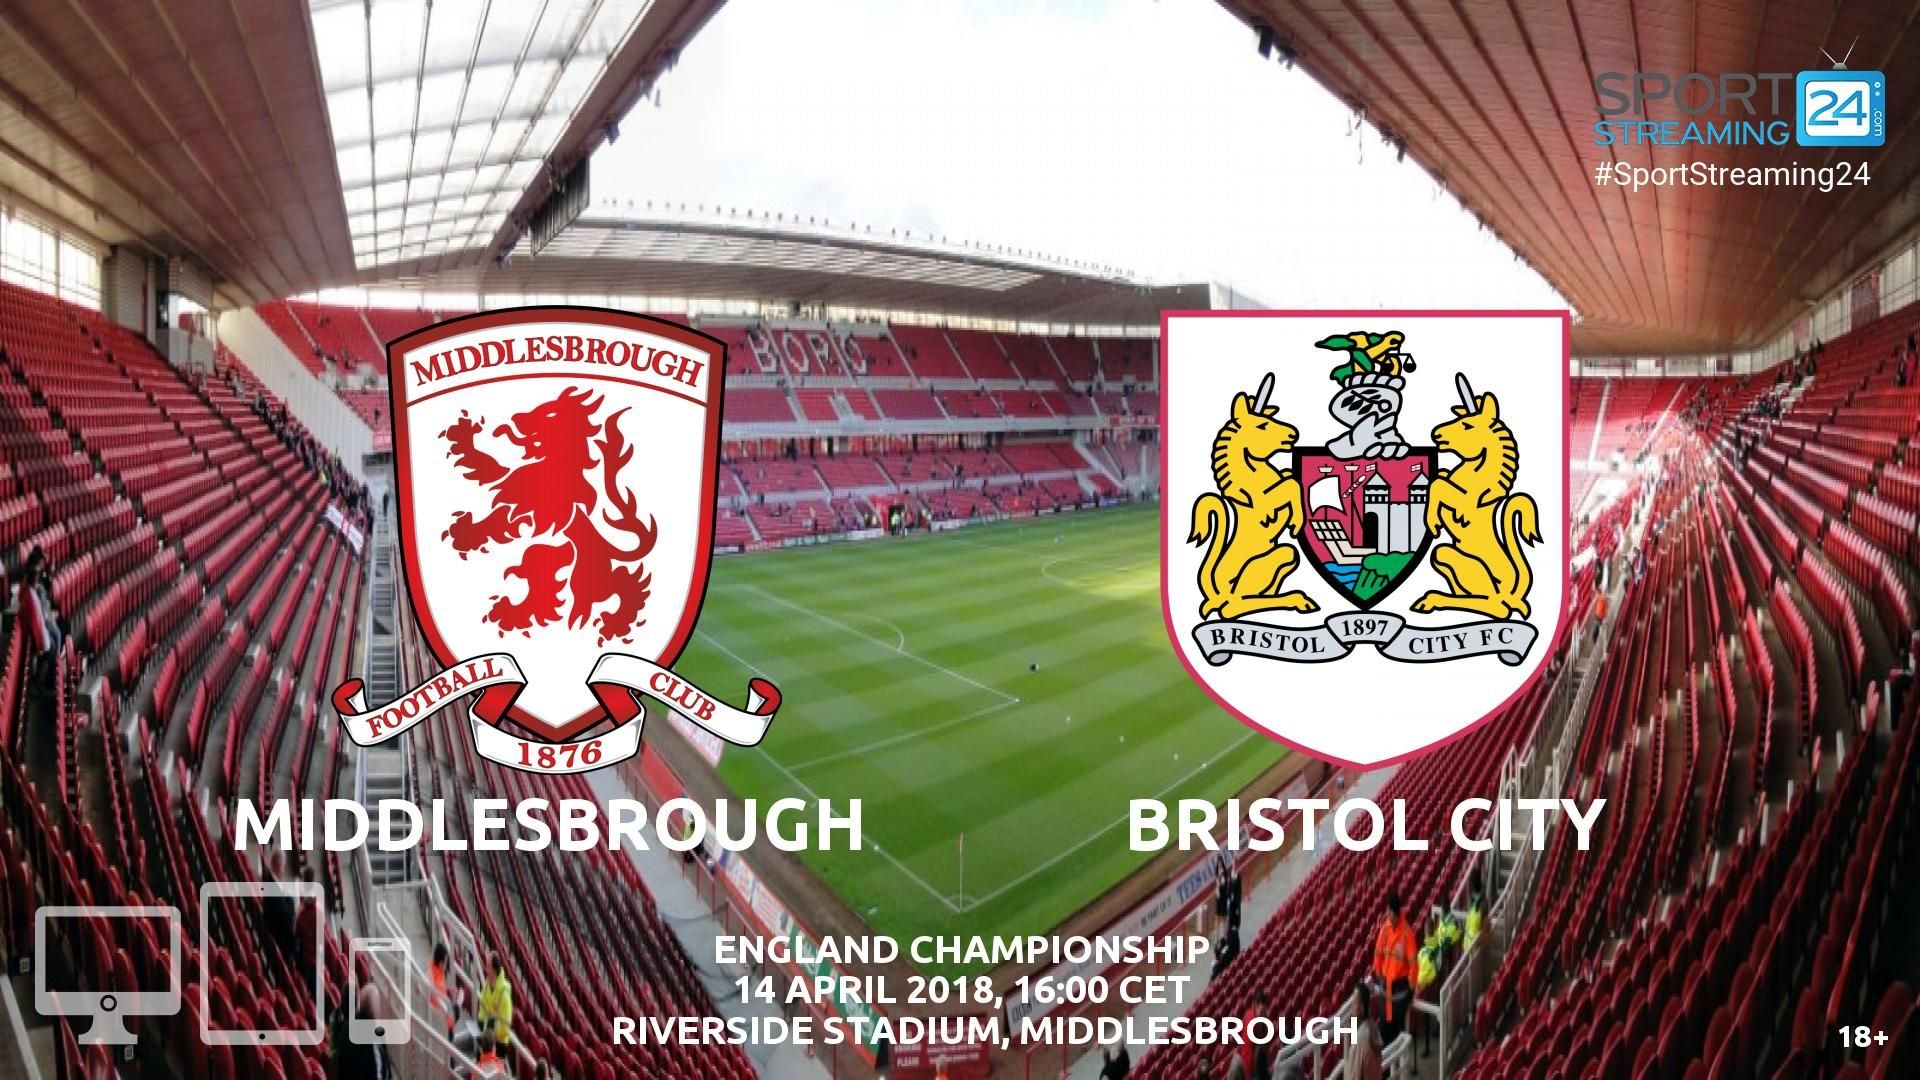 Streaming News And Match Previews Sportstreaming24 Bristol City Middlesbrough Streaming